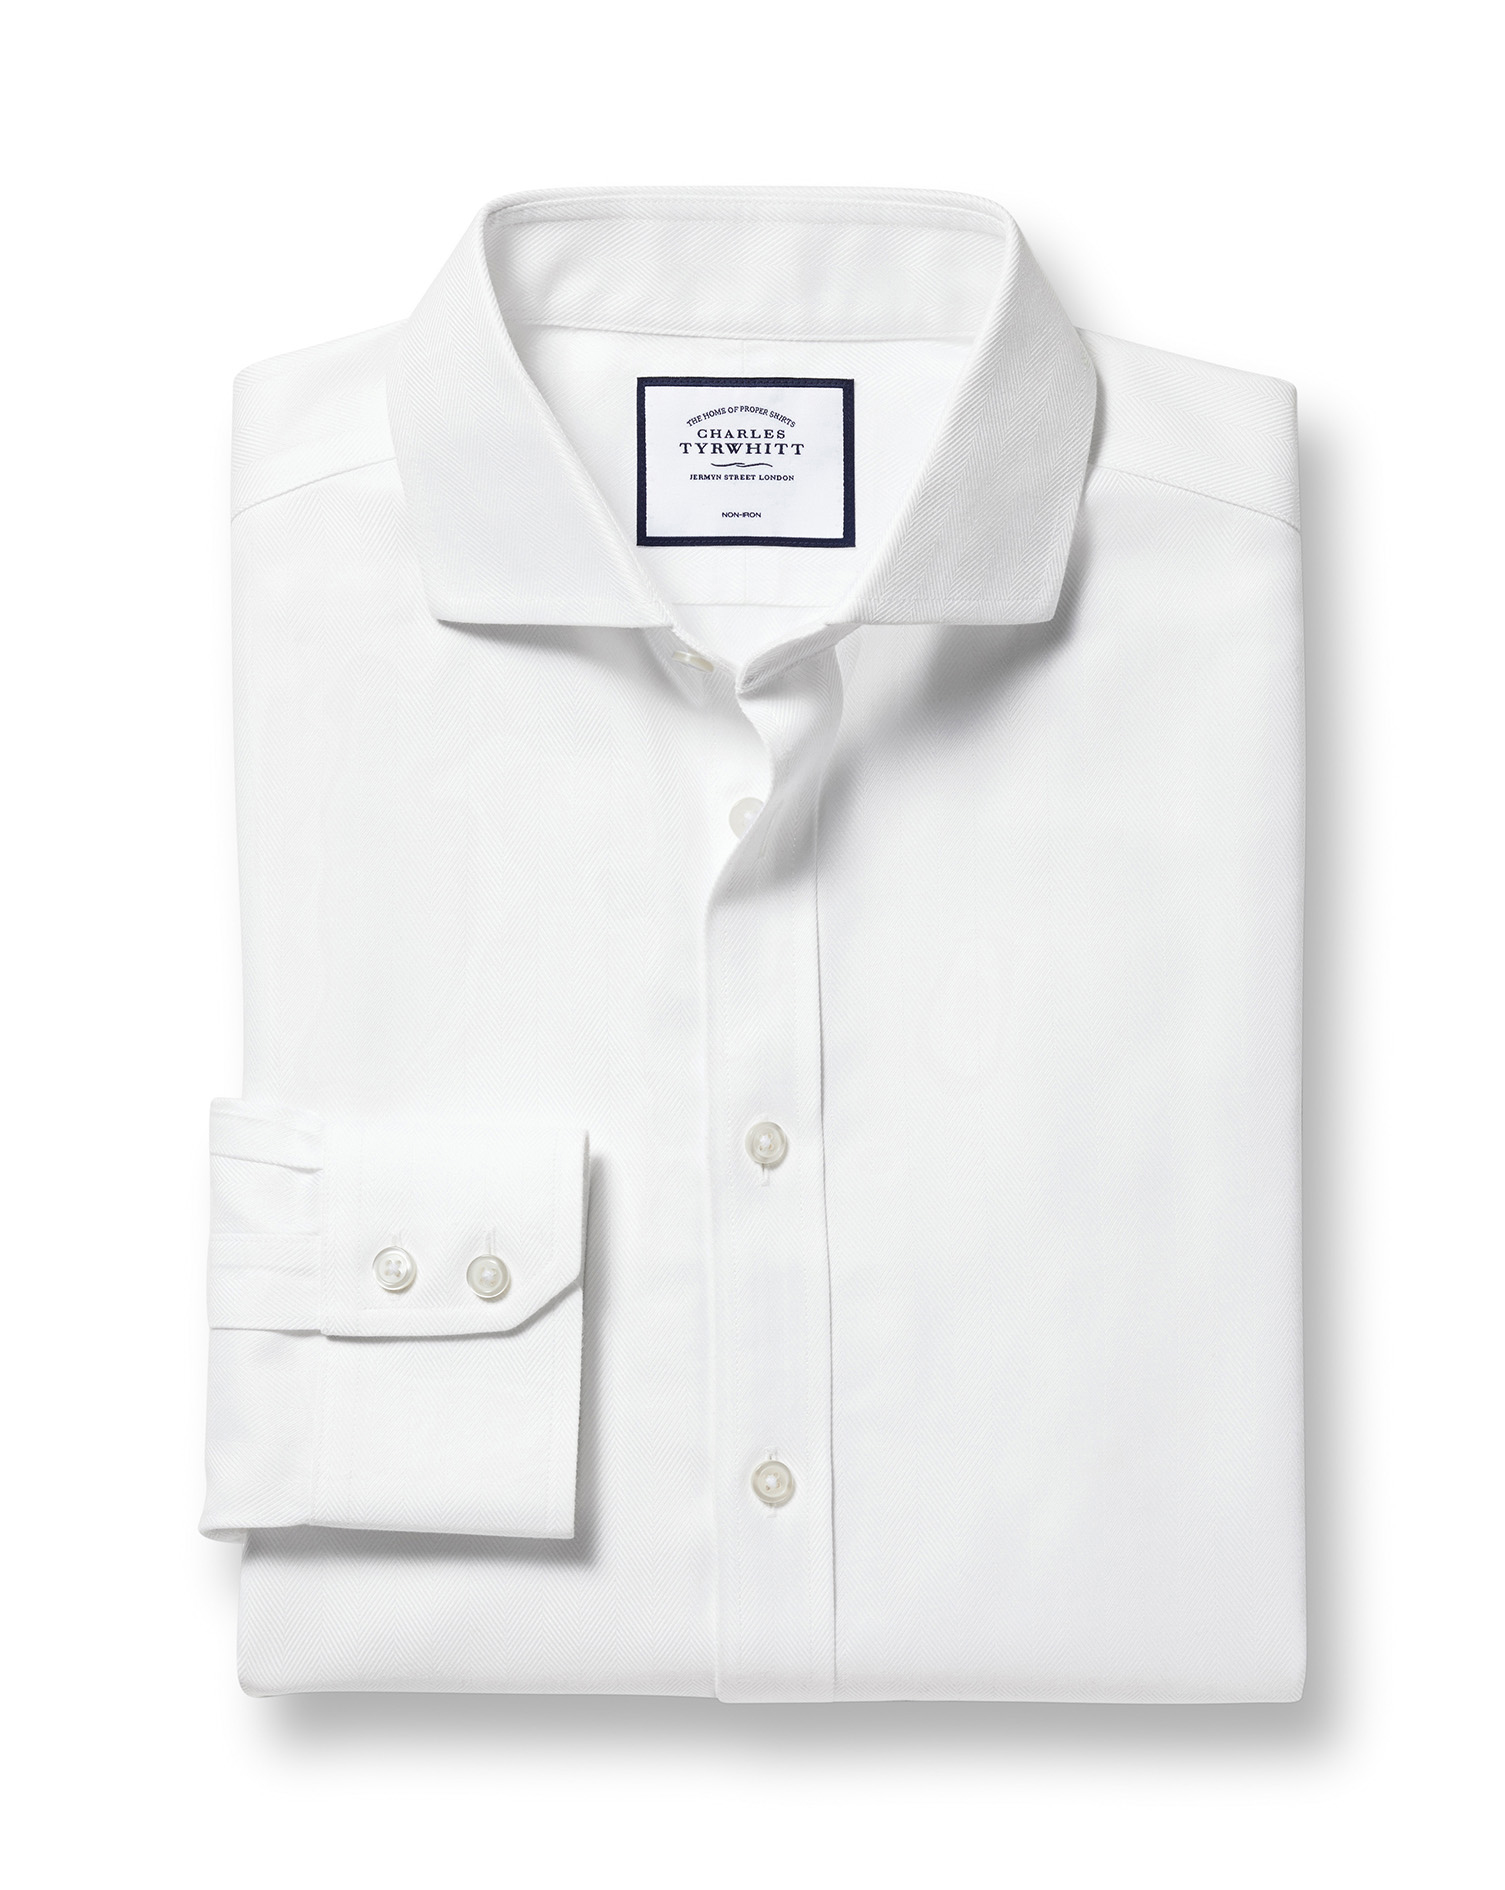 Extra Slim Fit Cutaway Non-Iron Herringbone White Cotton Formal Shirt Single Cuff Size 16/33 by Char